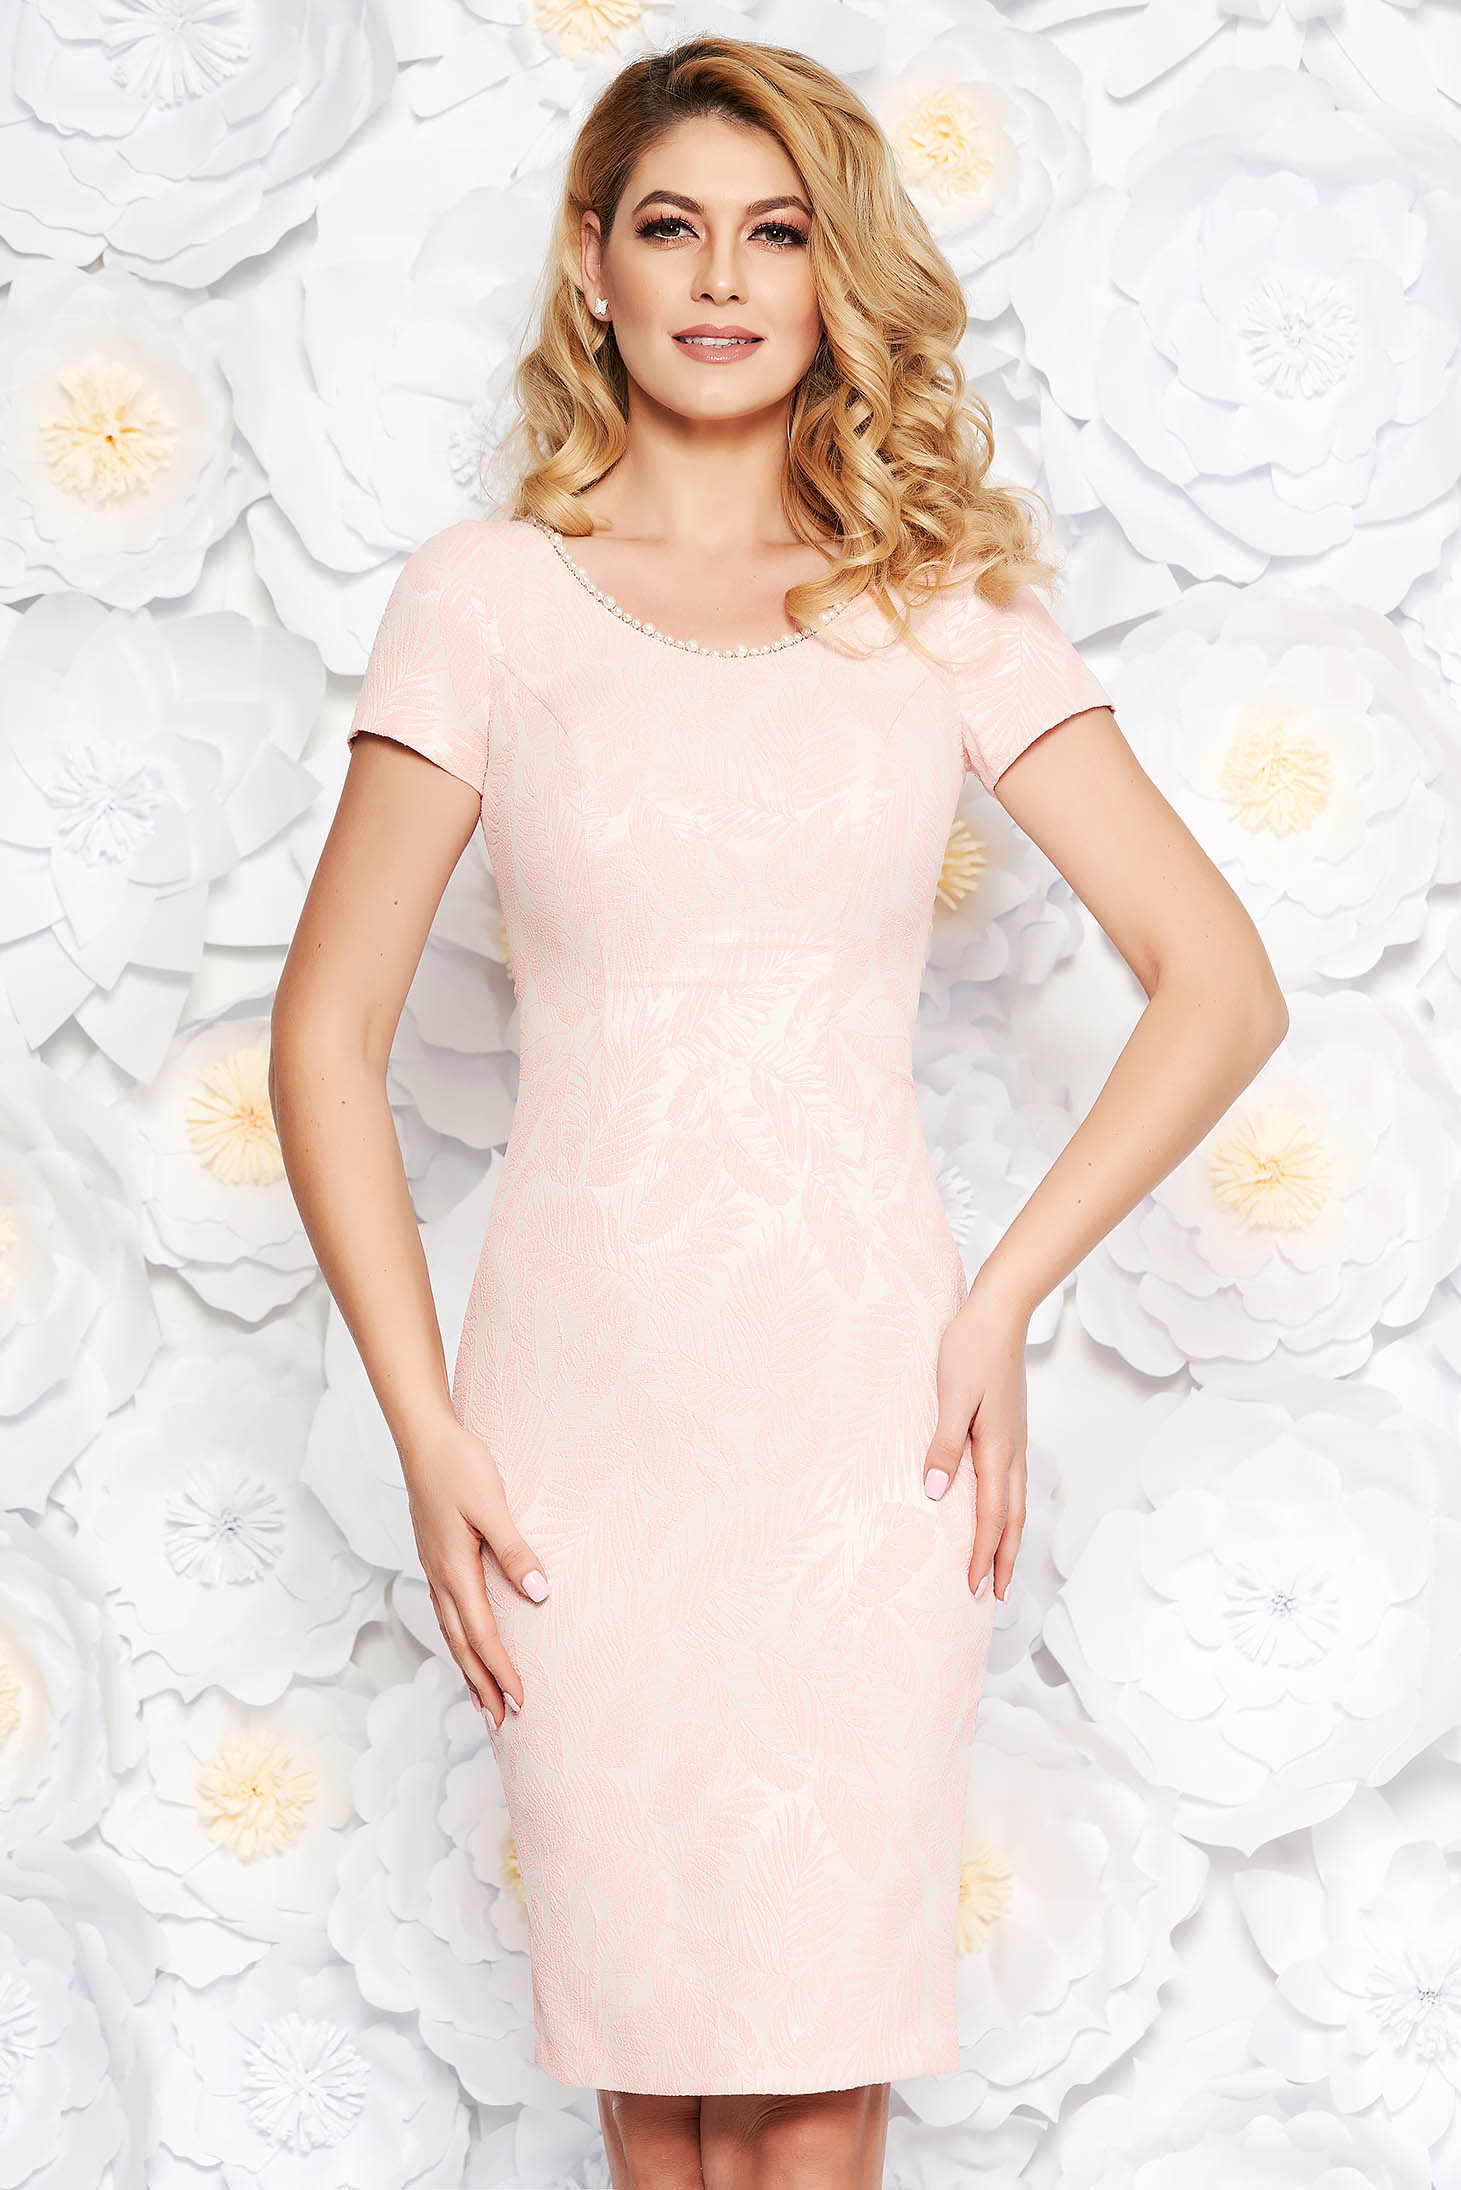 Lightpink occasional midi pencil dress from jacquard with inside lining with small beads embellished details